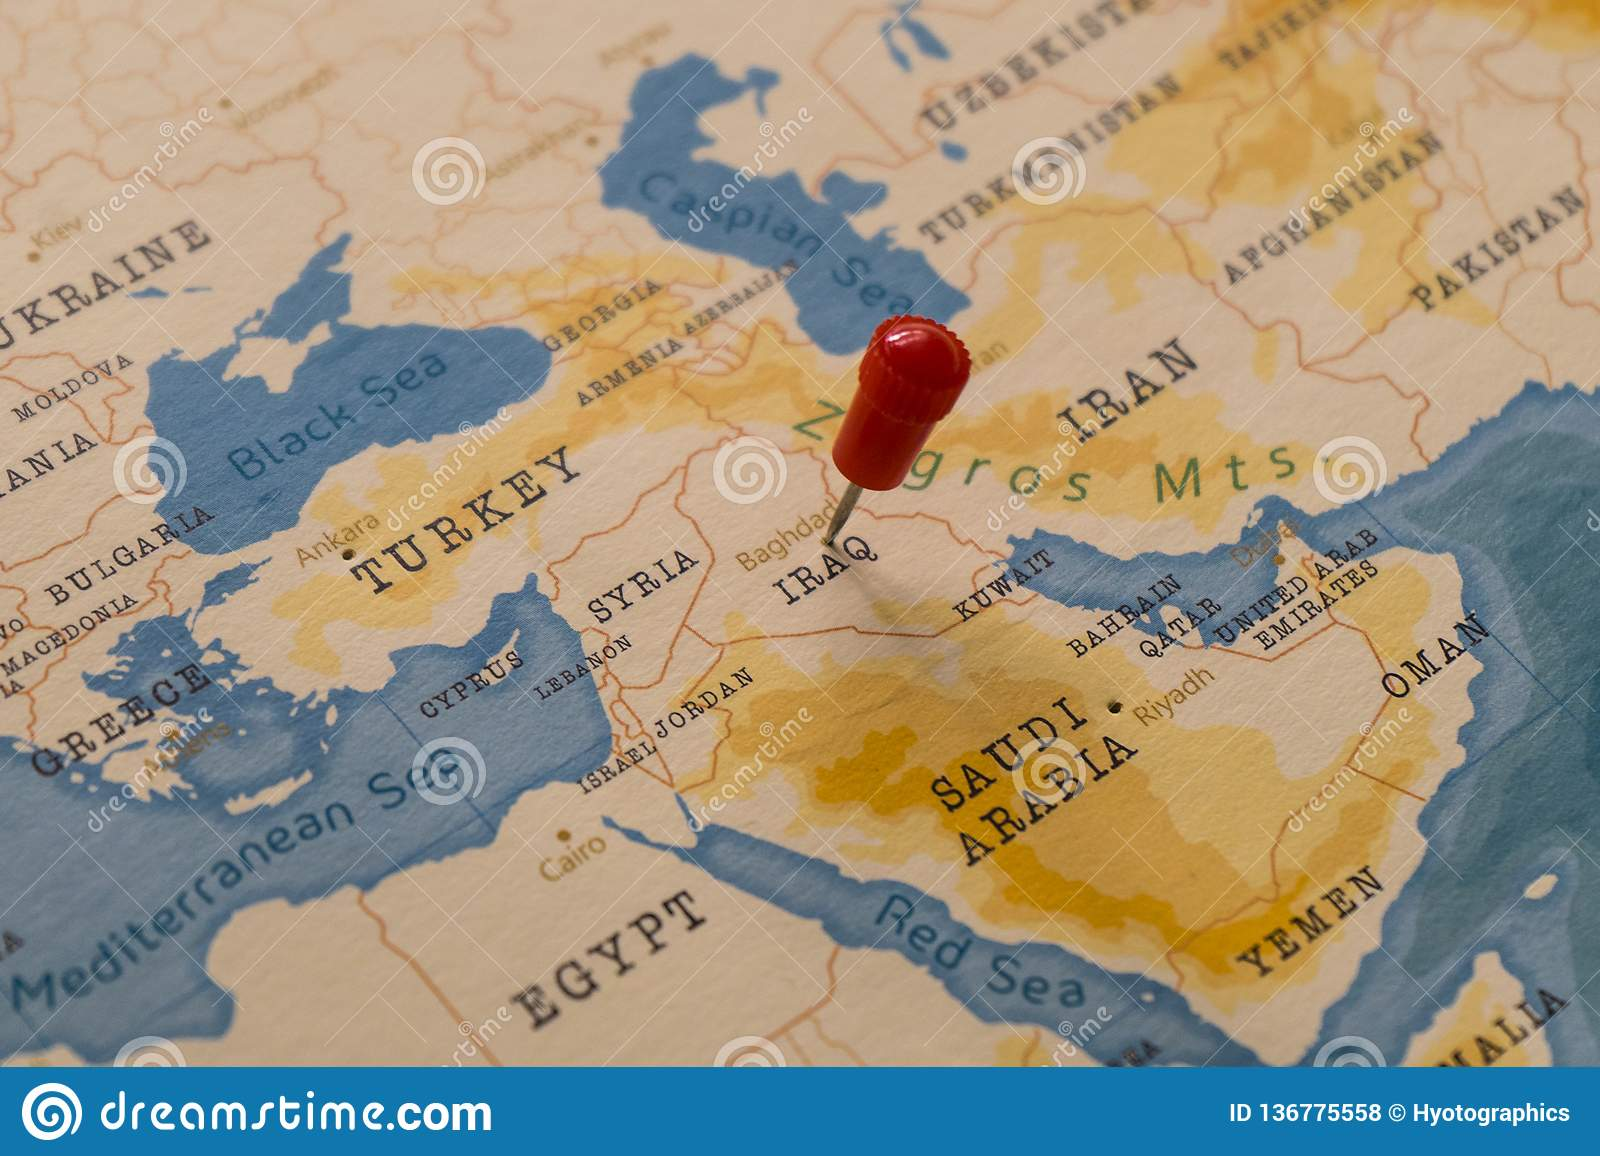 A Pin On Baghdad, Iraq In The World Map Stock Photo - Image ...